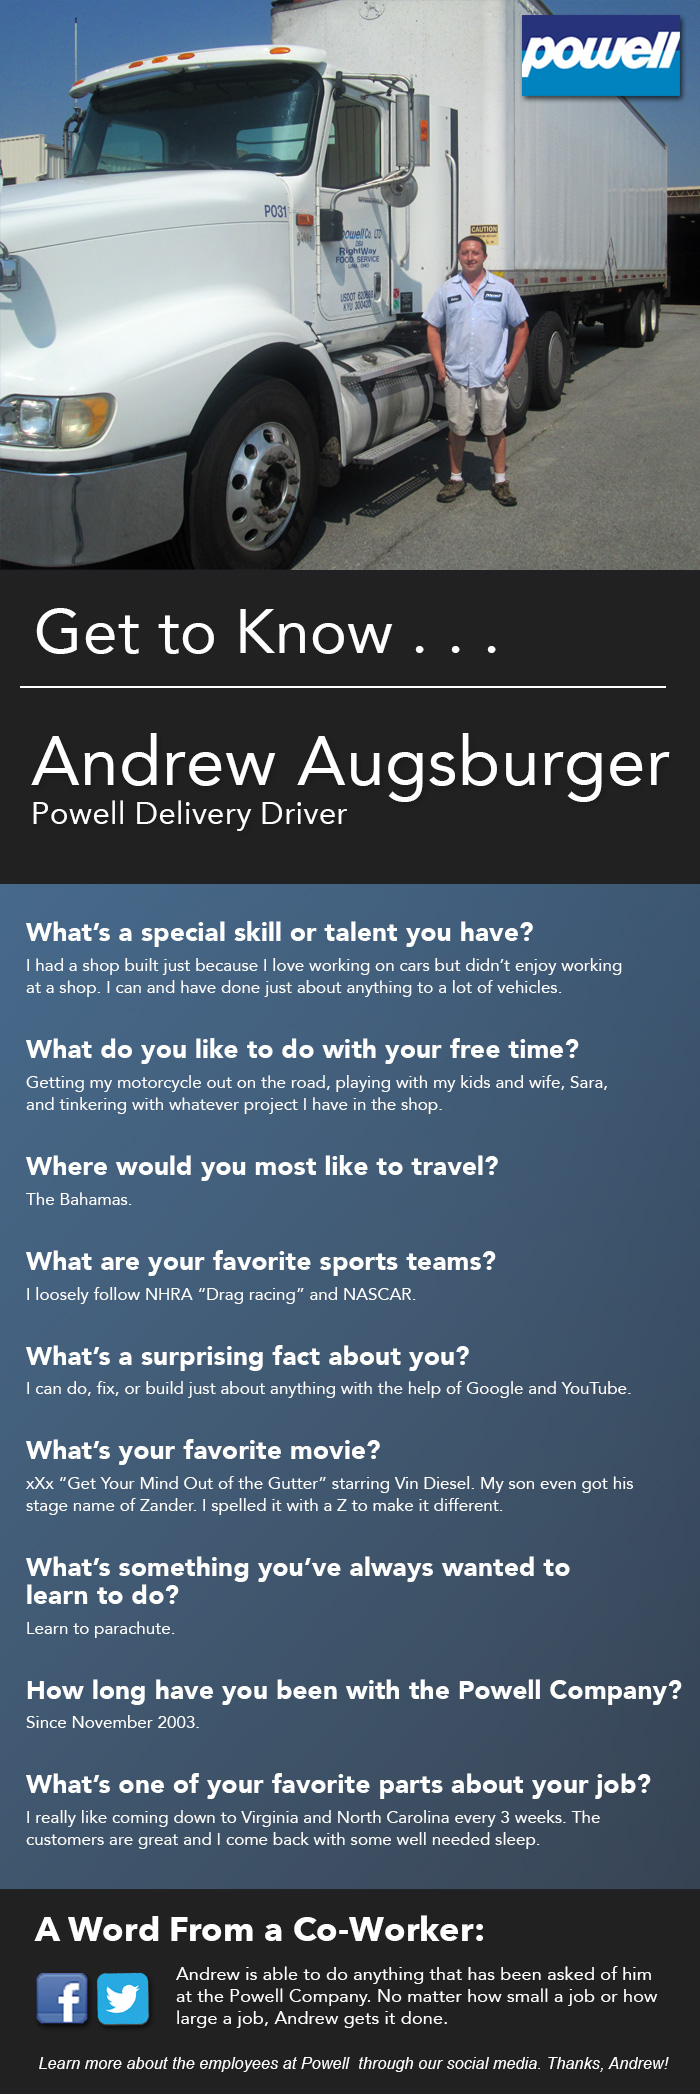 9-15 get to know andrew